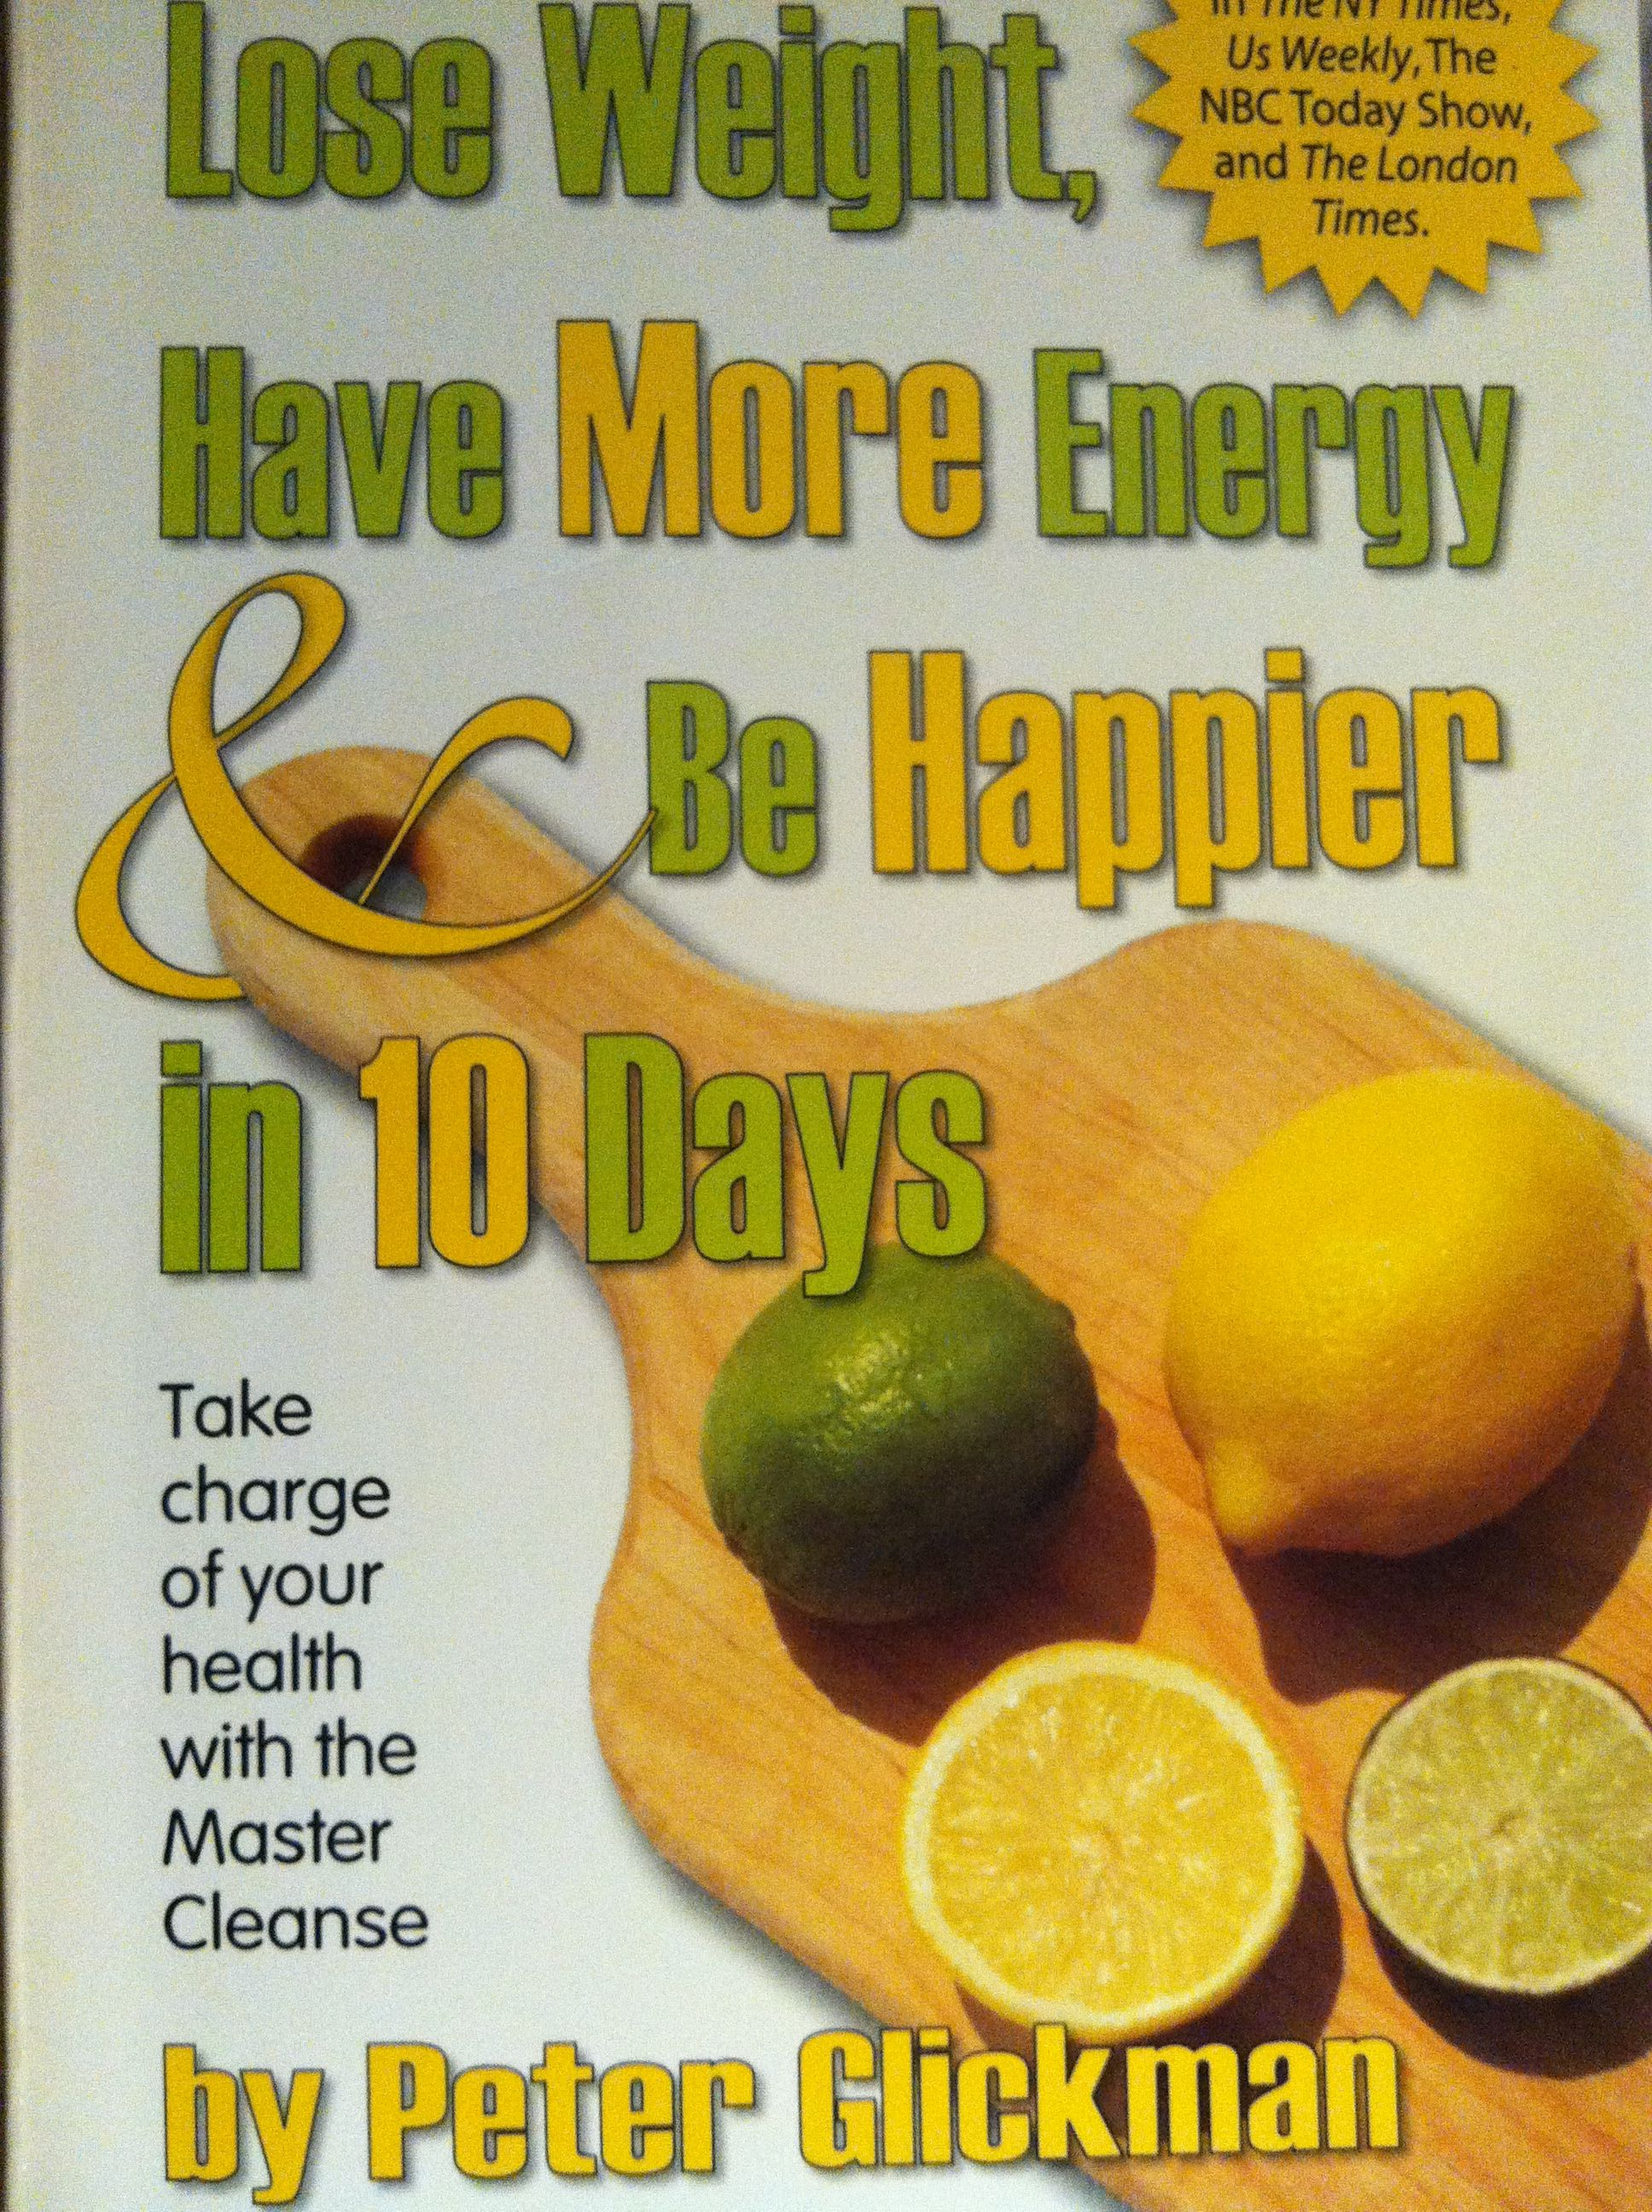 Master Cleanse A Little Tough But Awesome Results Basic How To